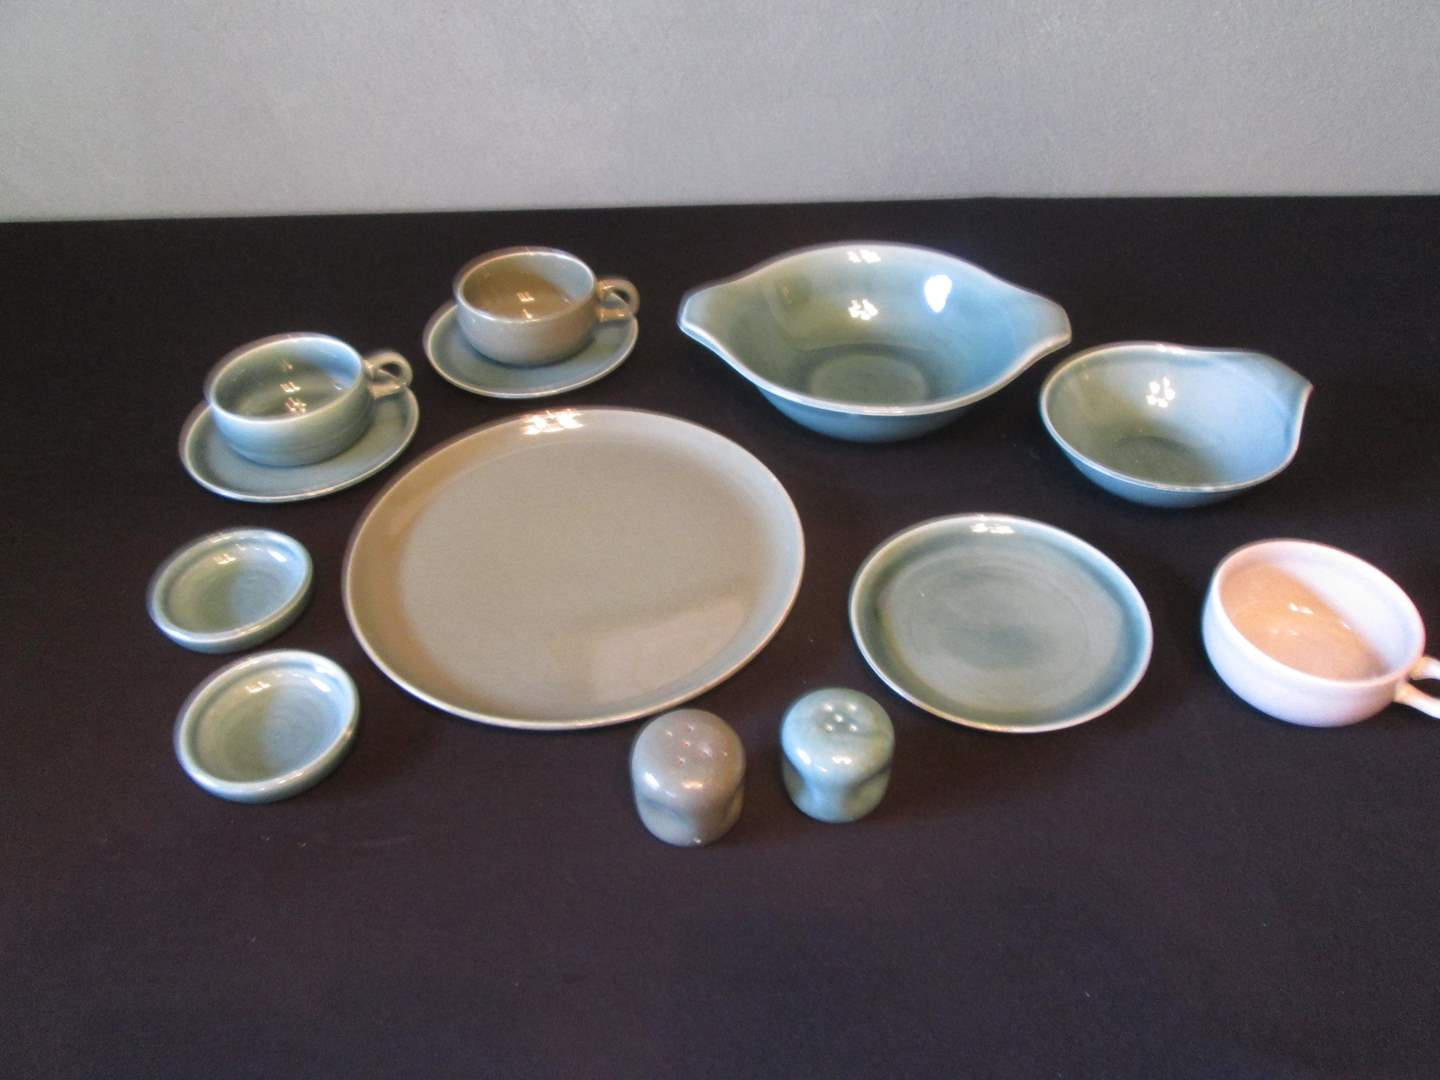 Lot # 241 - MCM Russel Wright China, Mixed Colors, 13 pieces (main image)